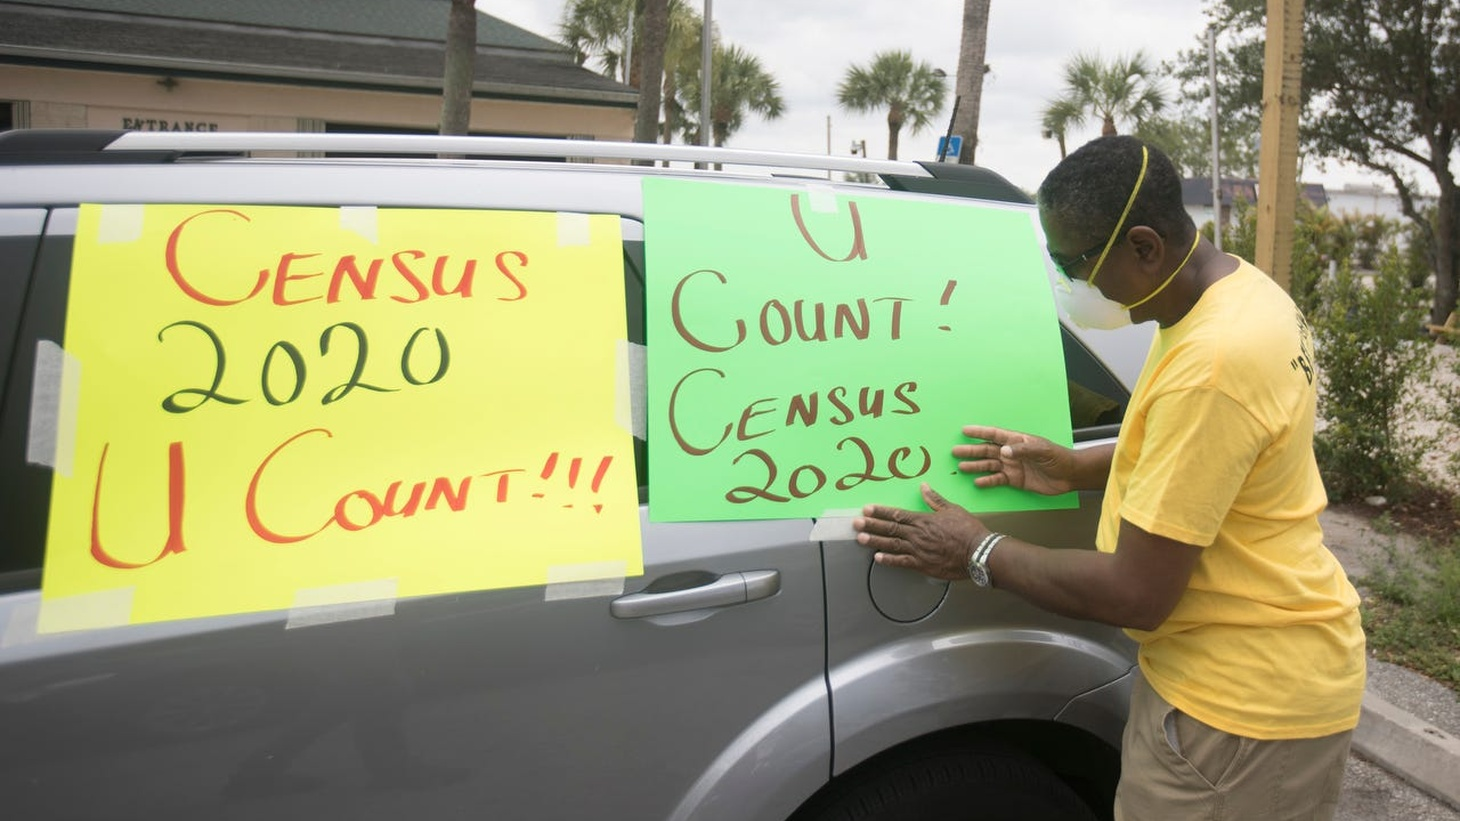 A group of residents went into the 401.22 Census tract in the Lehigh Acres neighborhood to urge residents to participate in the U.S. Census 2020 count. The neighborhood has a historically low turnout in the U.S. census.